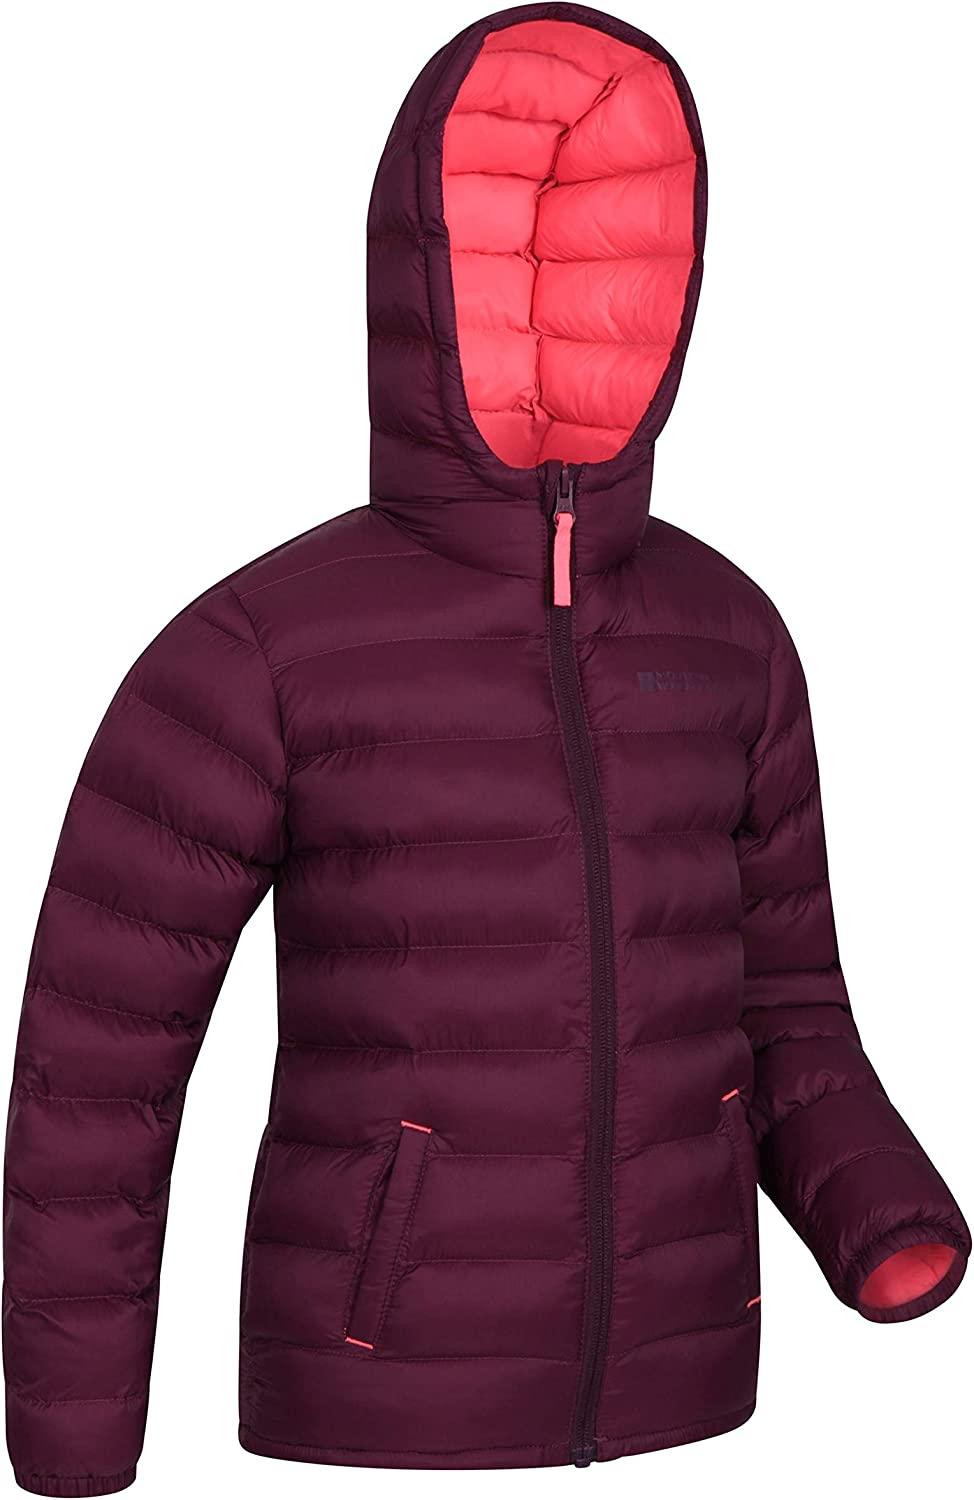 for Travelling Durable Casual Jacket Pockets Hoodie Water Resistant Rain Coat Fleece Lining Childrens Coat Mountain Warehouse Turbine Kids Padded Winter Jacket